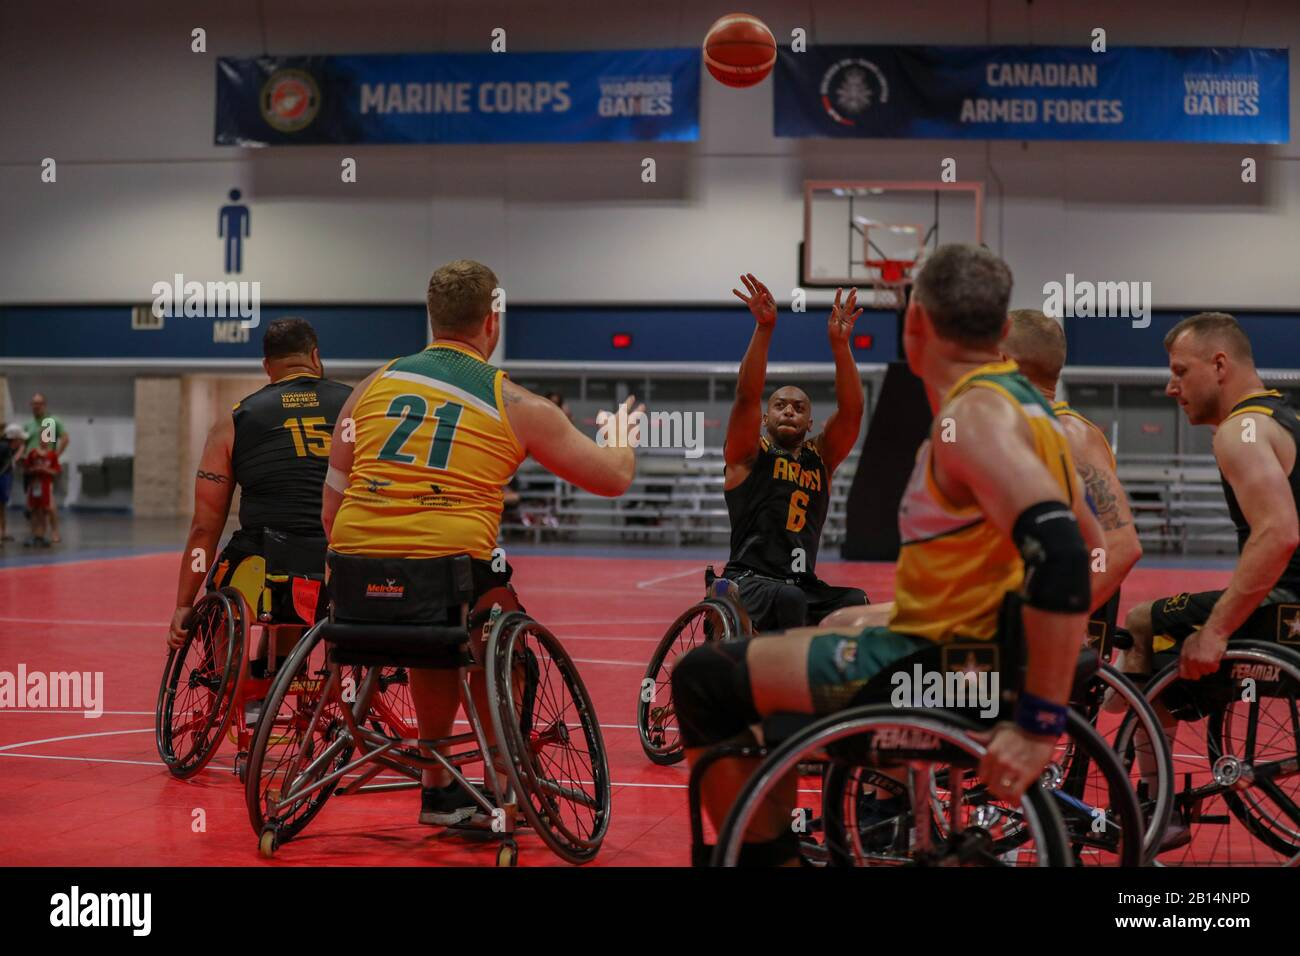 U.S. Army Spc. Brent Garlic, retired, participates in the Wheelchair Basketball Prelim event of the Department of Defense Warrior Games competition at The Tampa Convention Center in Tampa, Fla., June 24, 2019. The Warrior Games are a collection of adaptive sports competitions for wounded, ill and injured service members and veterans. Approximately 300 athletes representing teams from the Army, Marine Corps, Navy, Air Force, Special Operations Command, United Kingdom Armed Forces, Australian Defence Forces, Canadian Armed Forces, Armed Forces of the Netherlands, and the Danish Armed Forces will Stock Photo